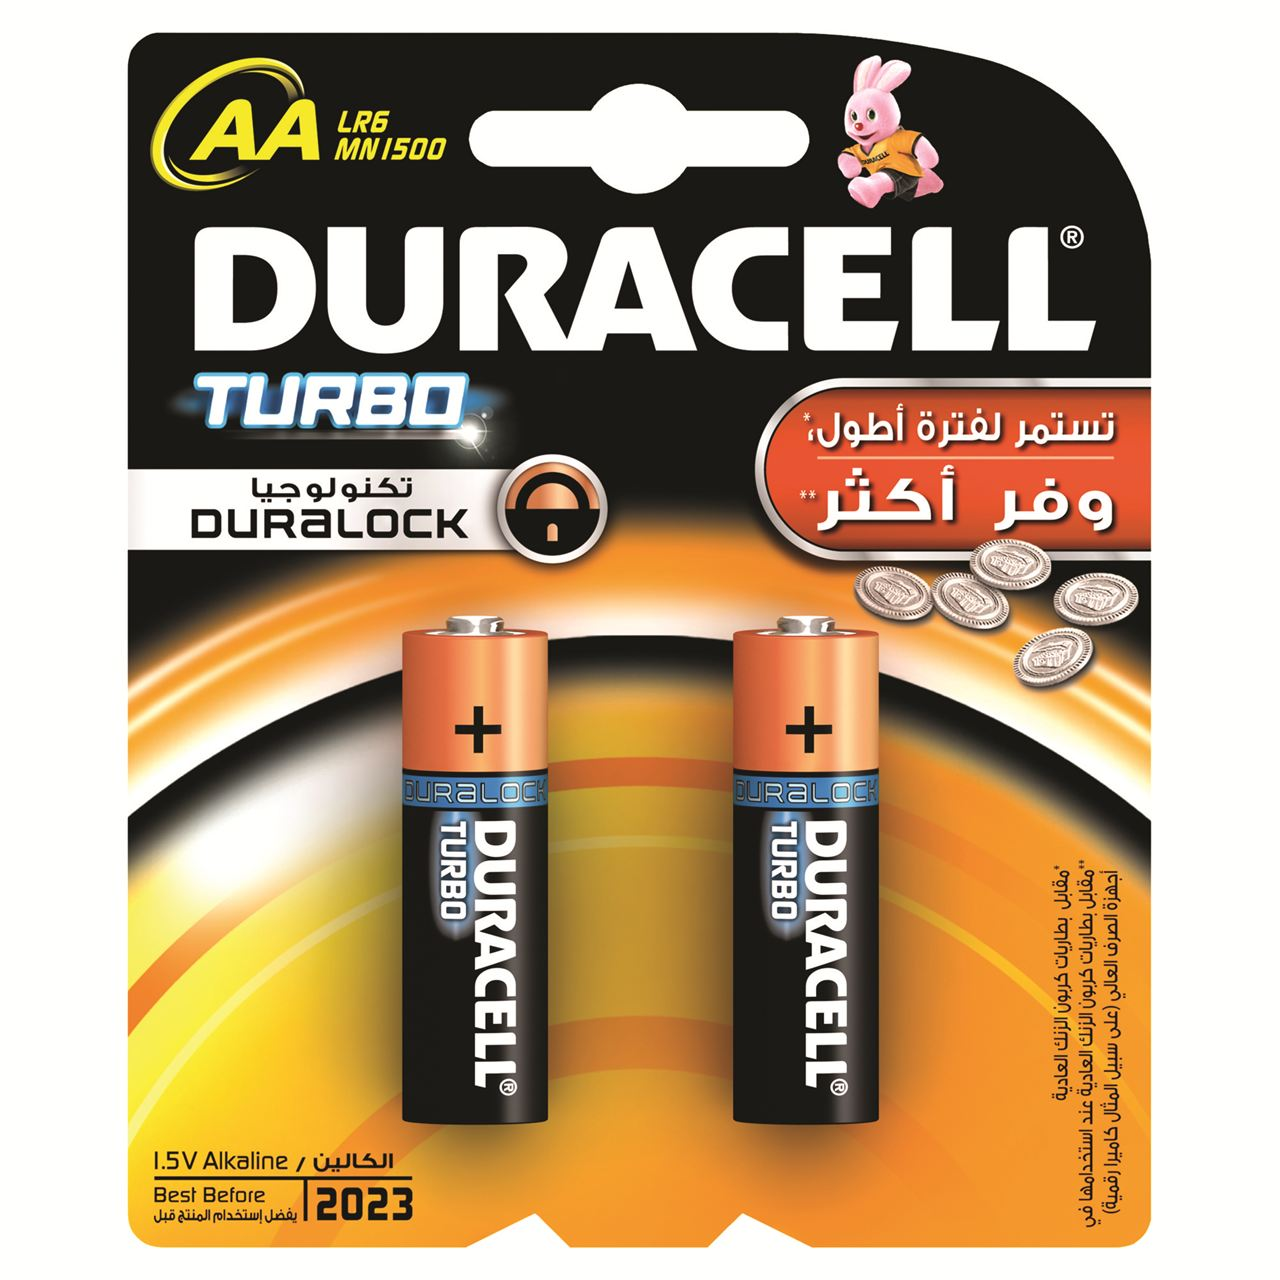 Batterie Aa Duracell Turbo Aa2 Battery Cells Gomart Pk